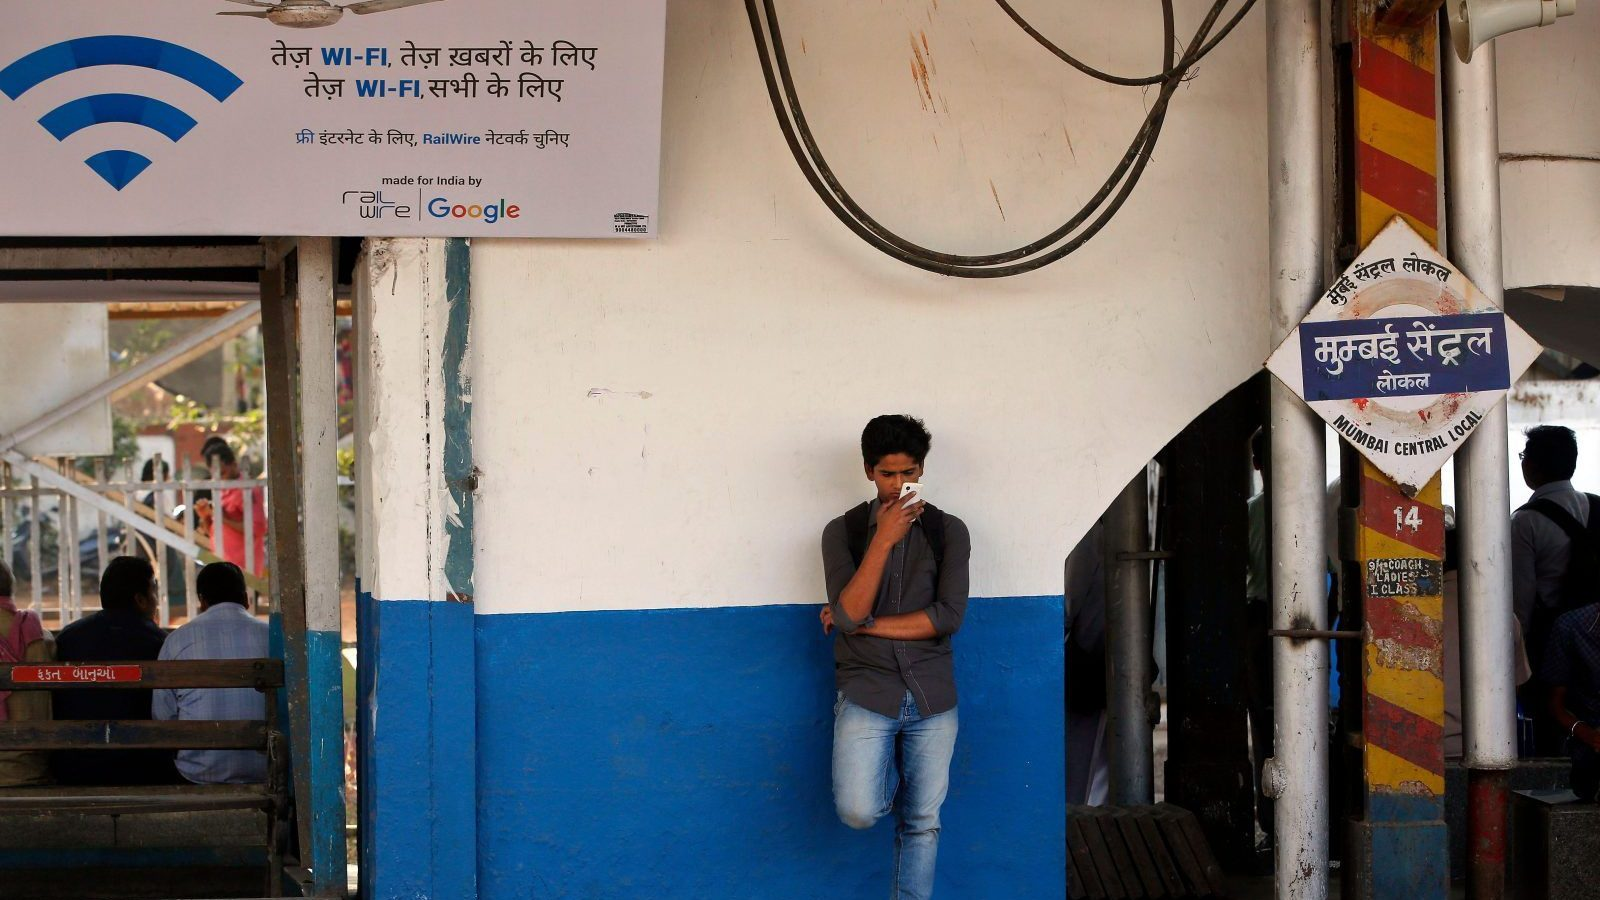 An Indian traveler uses a free WiFi service to browse the net at Mumbai Central Train Station in Mumbai, India, Friday, Jan. 22, 2016. Google Inc. has begun offering free WiFi to Mumbai train passengers in hopes of boosting its role in the Indian market. A poster on the left says 'fast WiFi, for fast news, fast WiFi, for everyone'. (AP Photo/Rajanish Kakade)